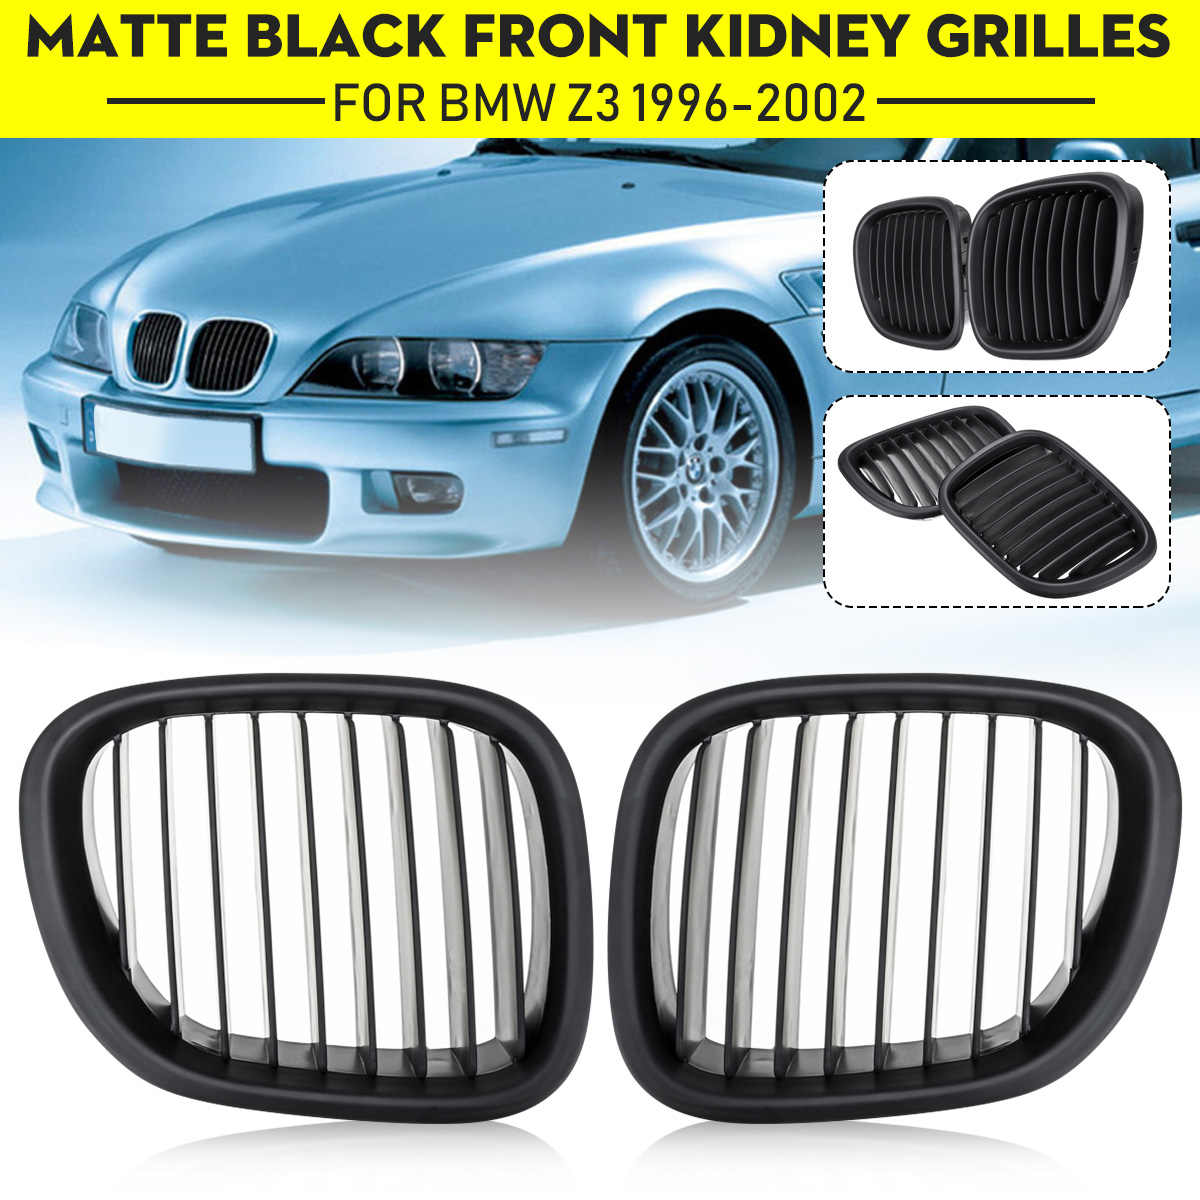 2 Pcs Gloss Matte Black Front Kidney Grill Grille For Bmw Z3 1996 2002 51138397504 51138397503 51138412949 51138412950 Styling Aliexpress